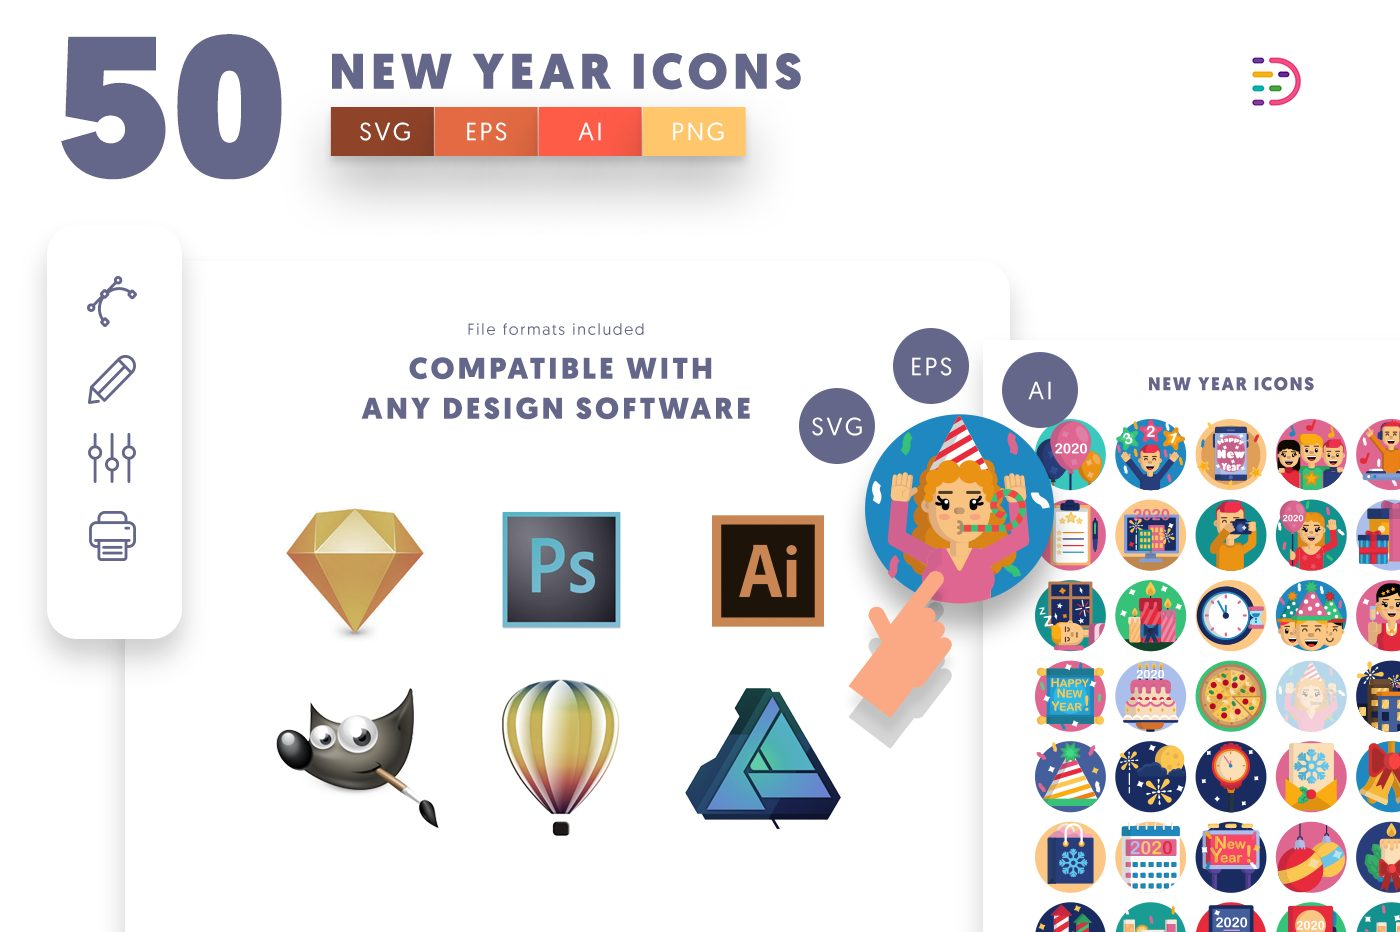 full vector 50 New Year Icons EPS, SVG, PNG